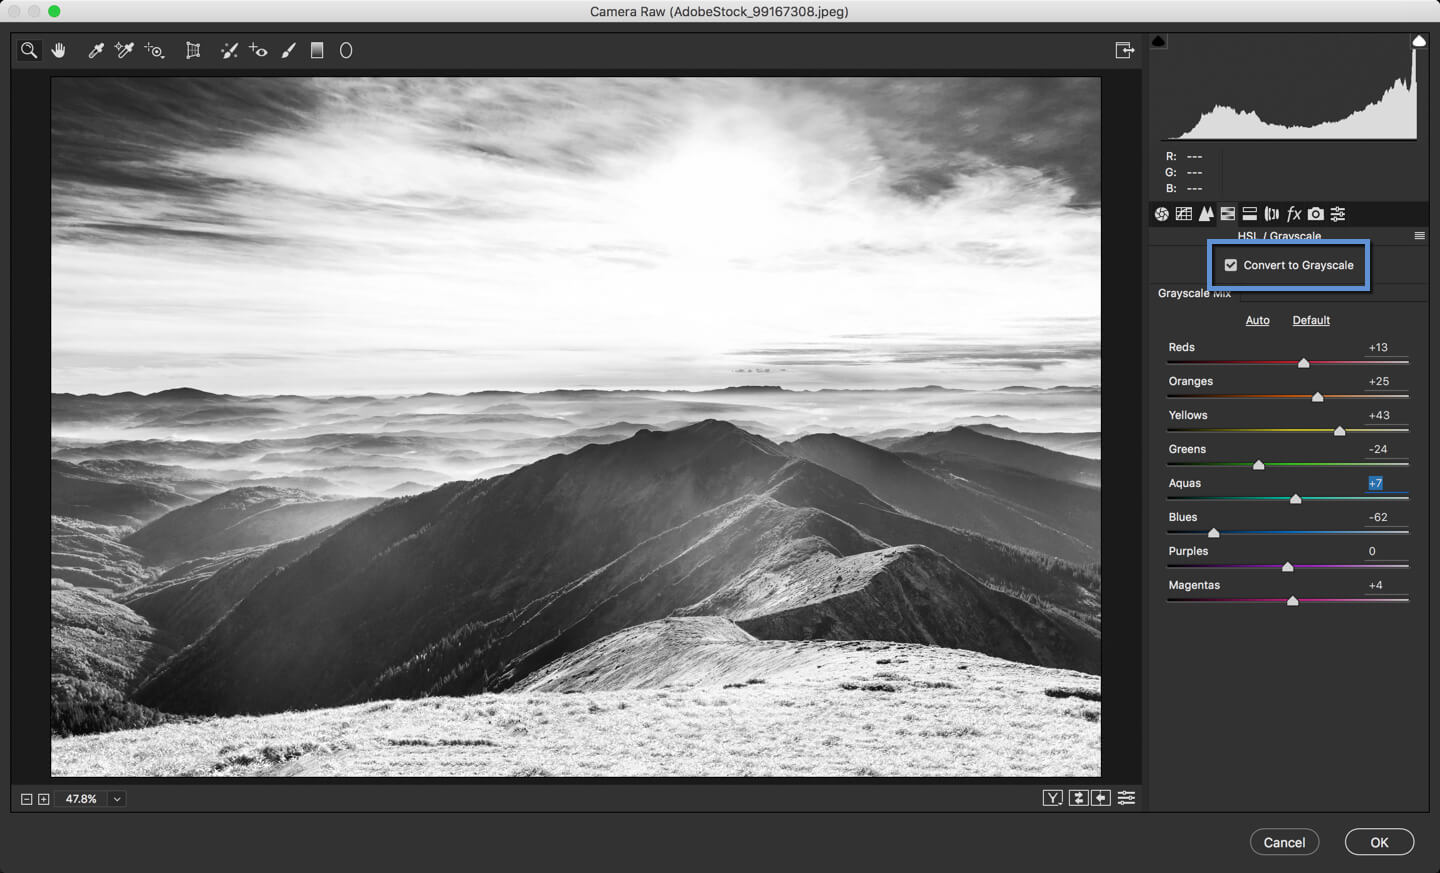 2-1 - DAY 23 – THE CAMERA RAW FILTER IN PHOTOSHOP: PART 2